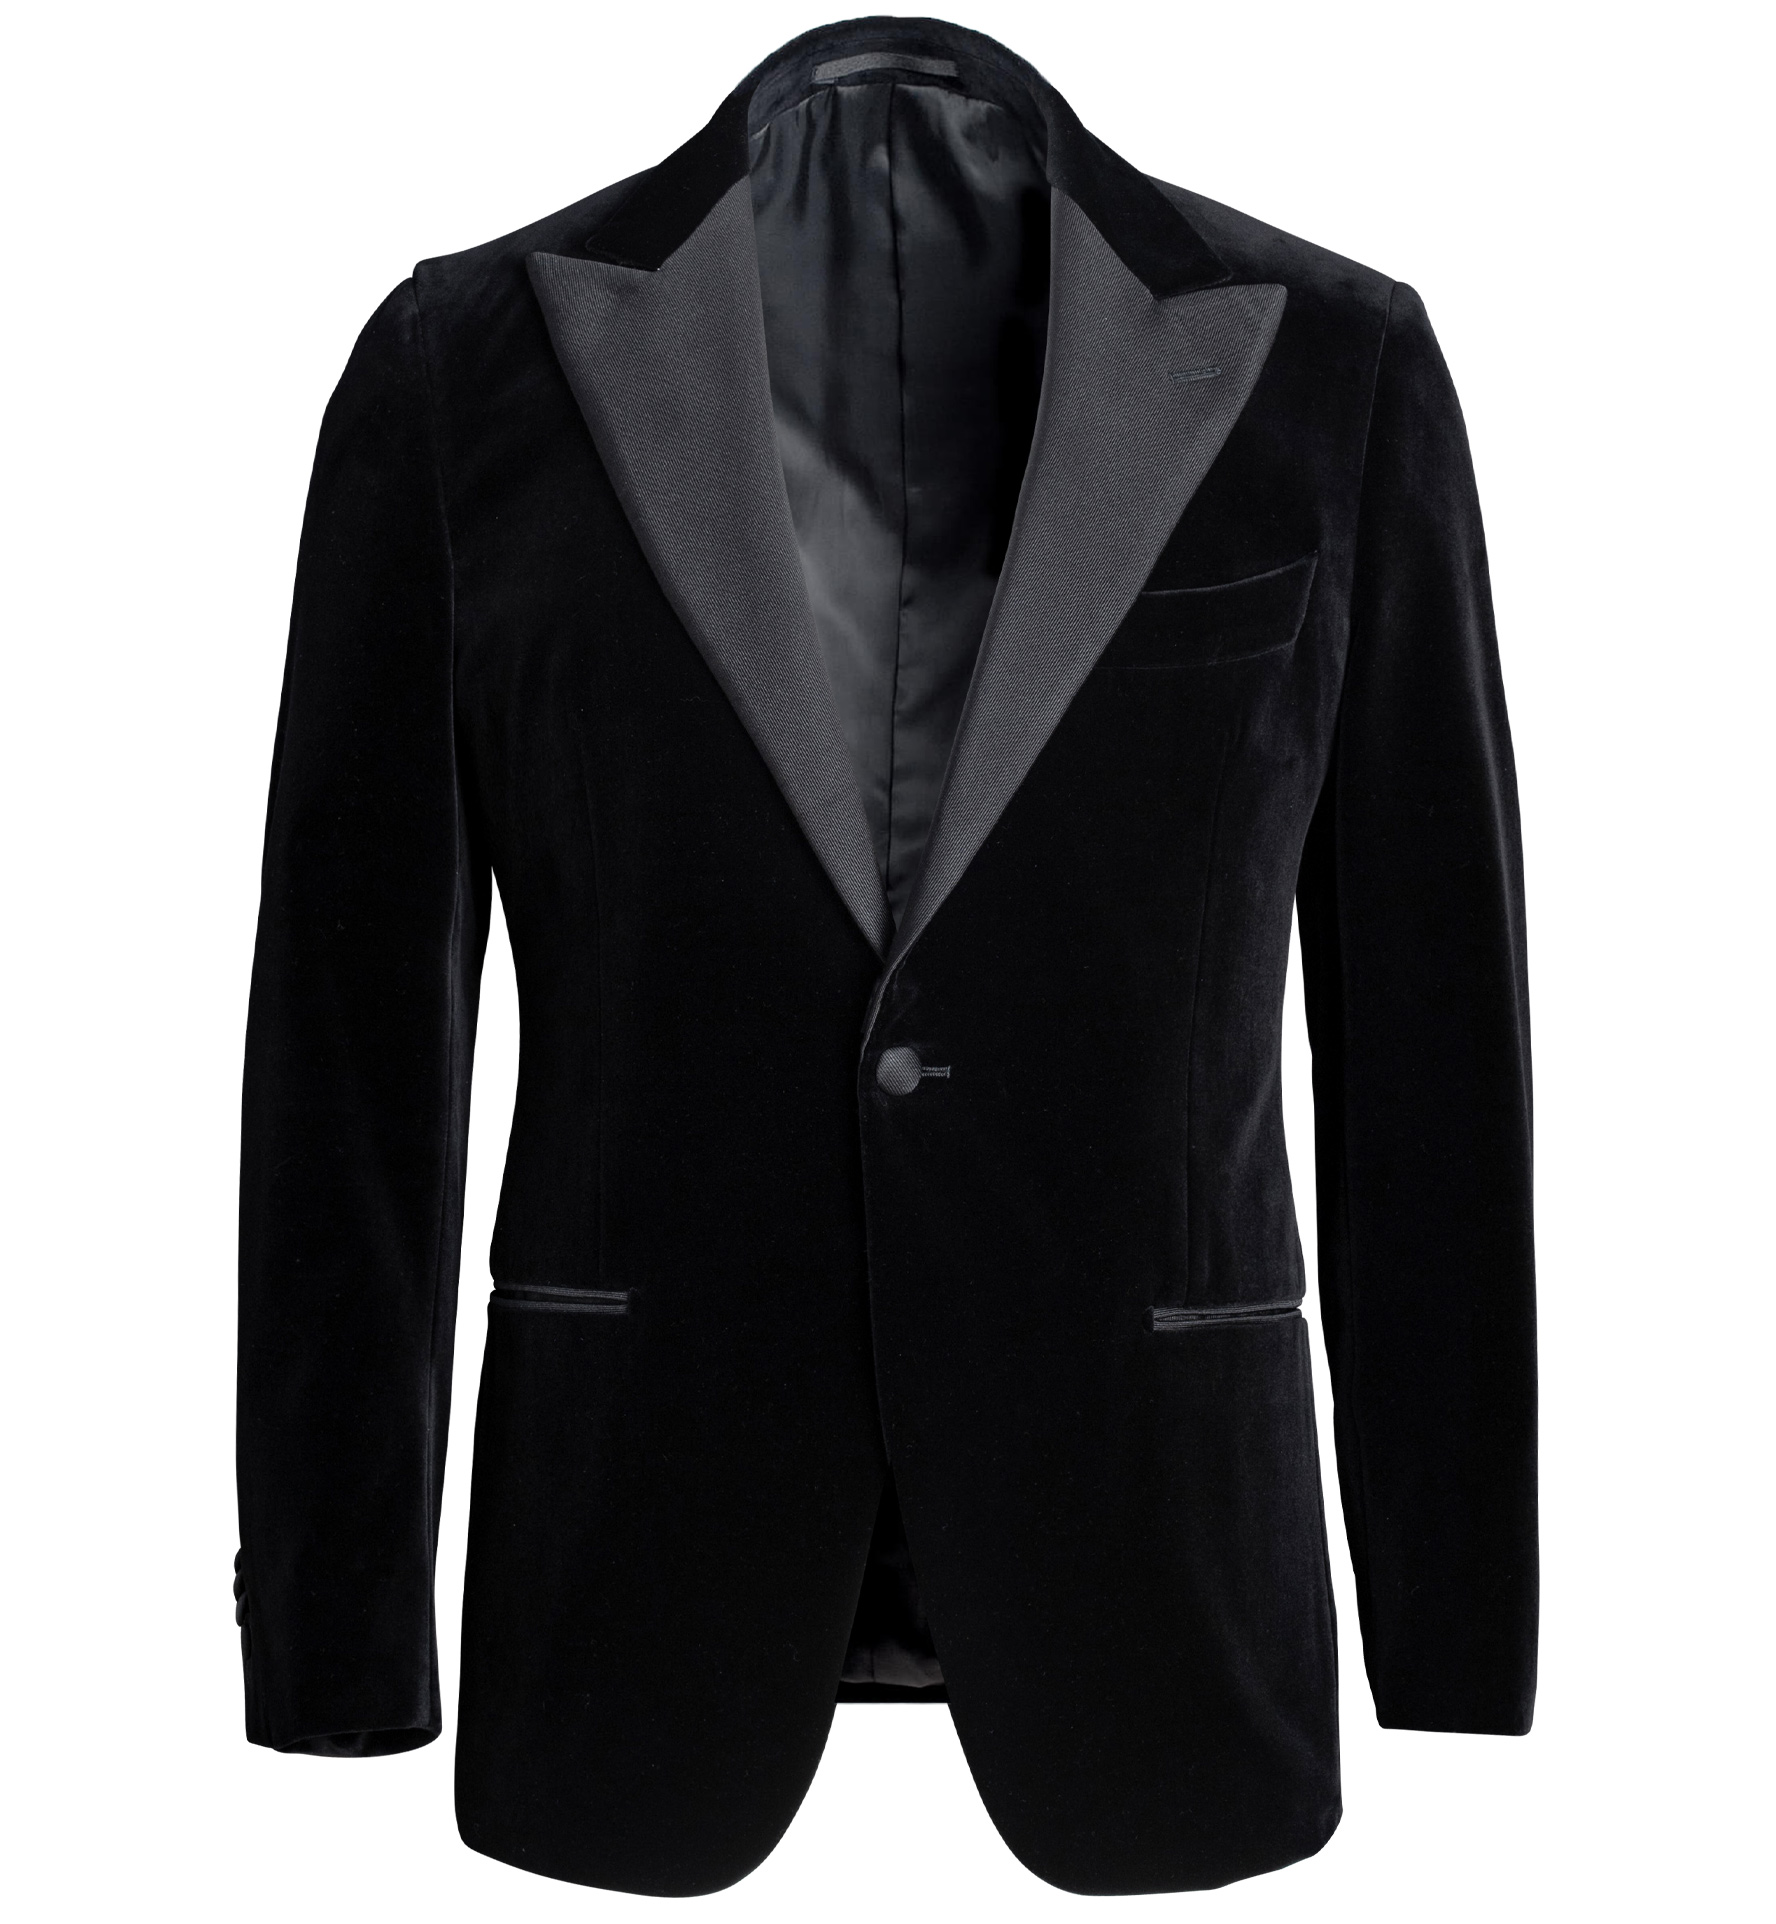 Zoom Image of Mayfair Black Velvet Dinner Jacket